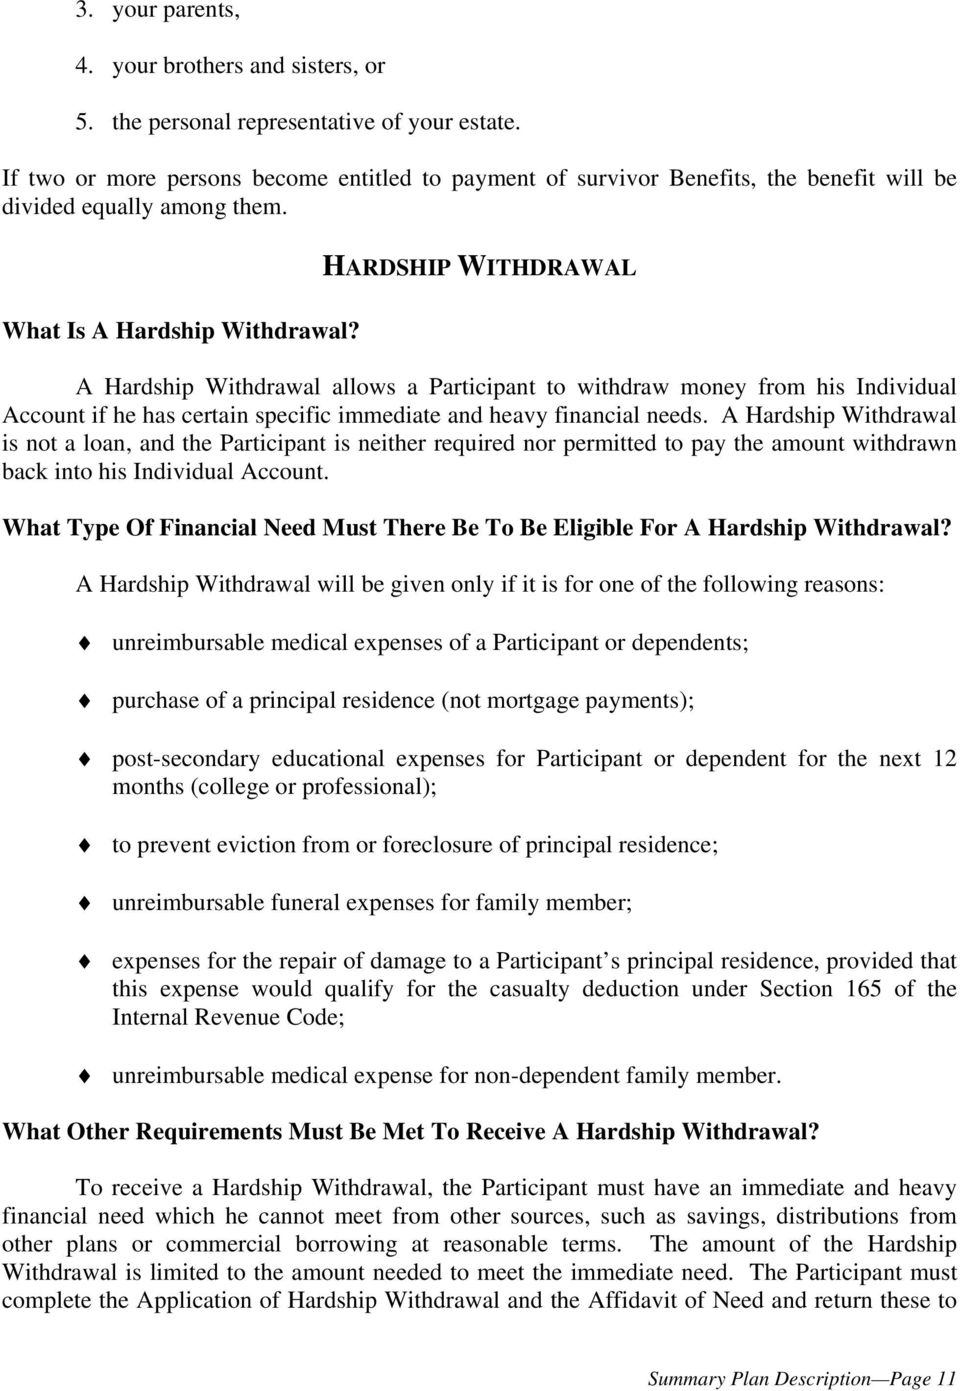 HARDSHIP WITHDRAWAL A Hardship Withdrawal allows a Participant to withdraw money from his Individual Account if he has certain specific immediate and heavy financial needs.